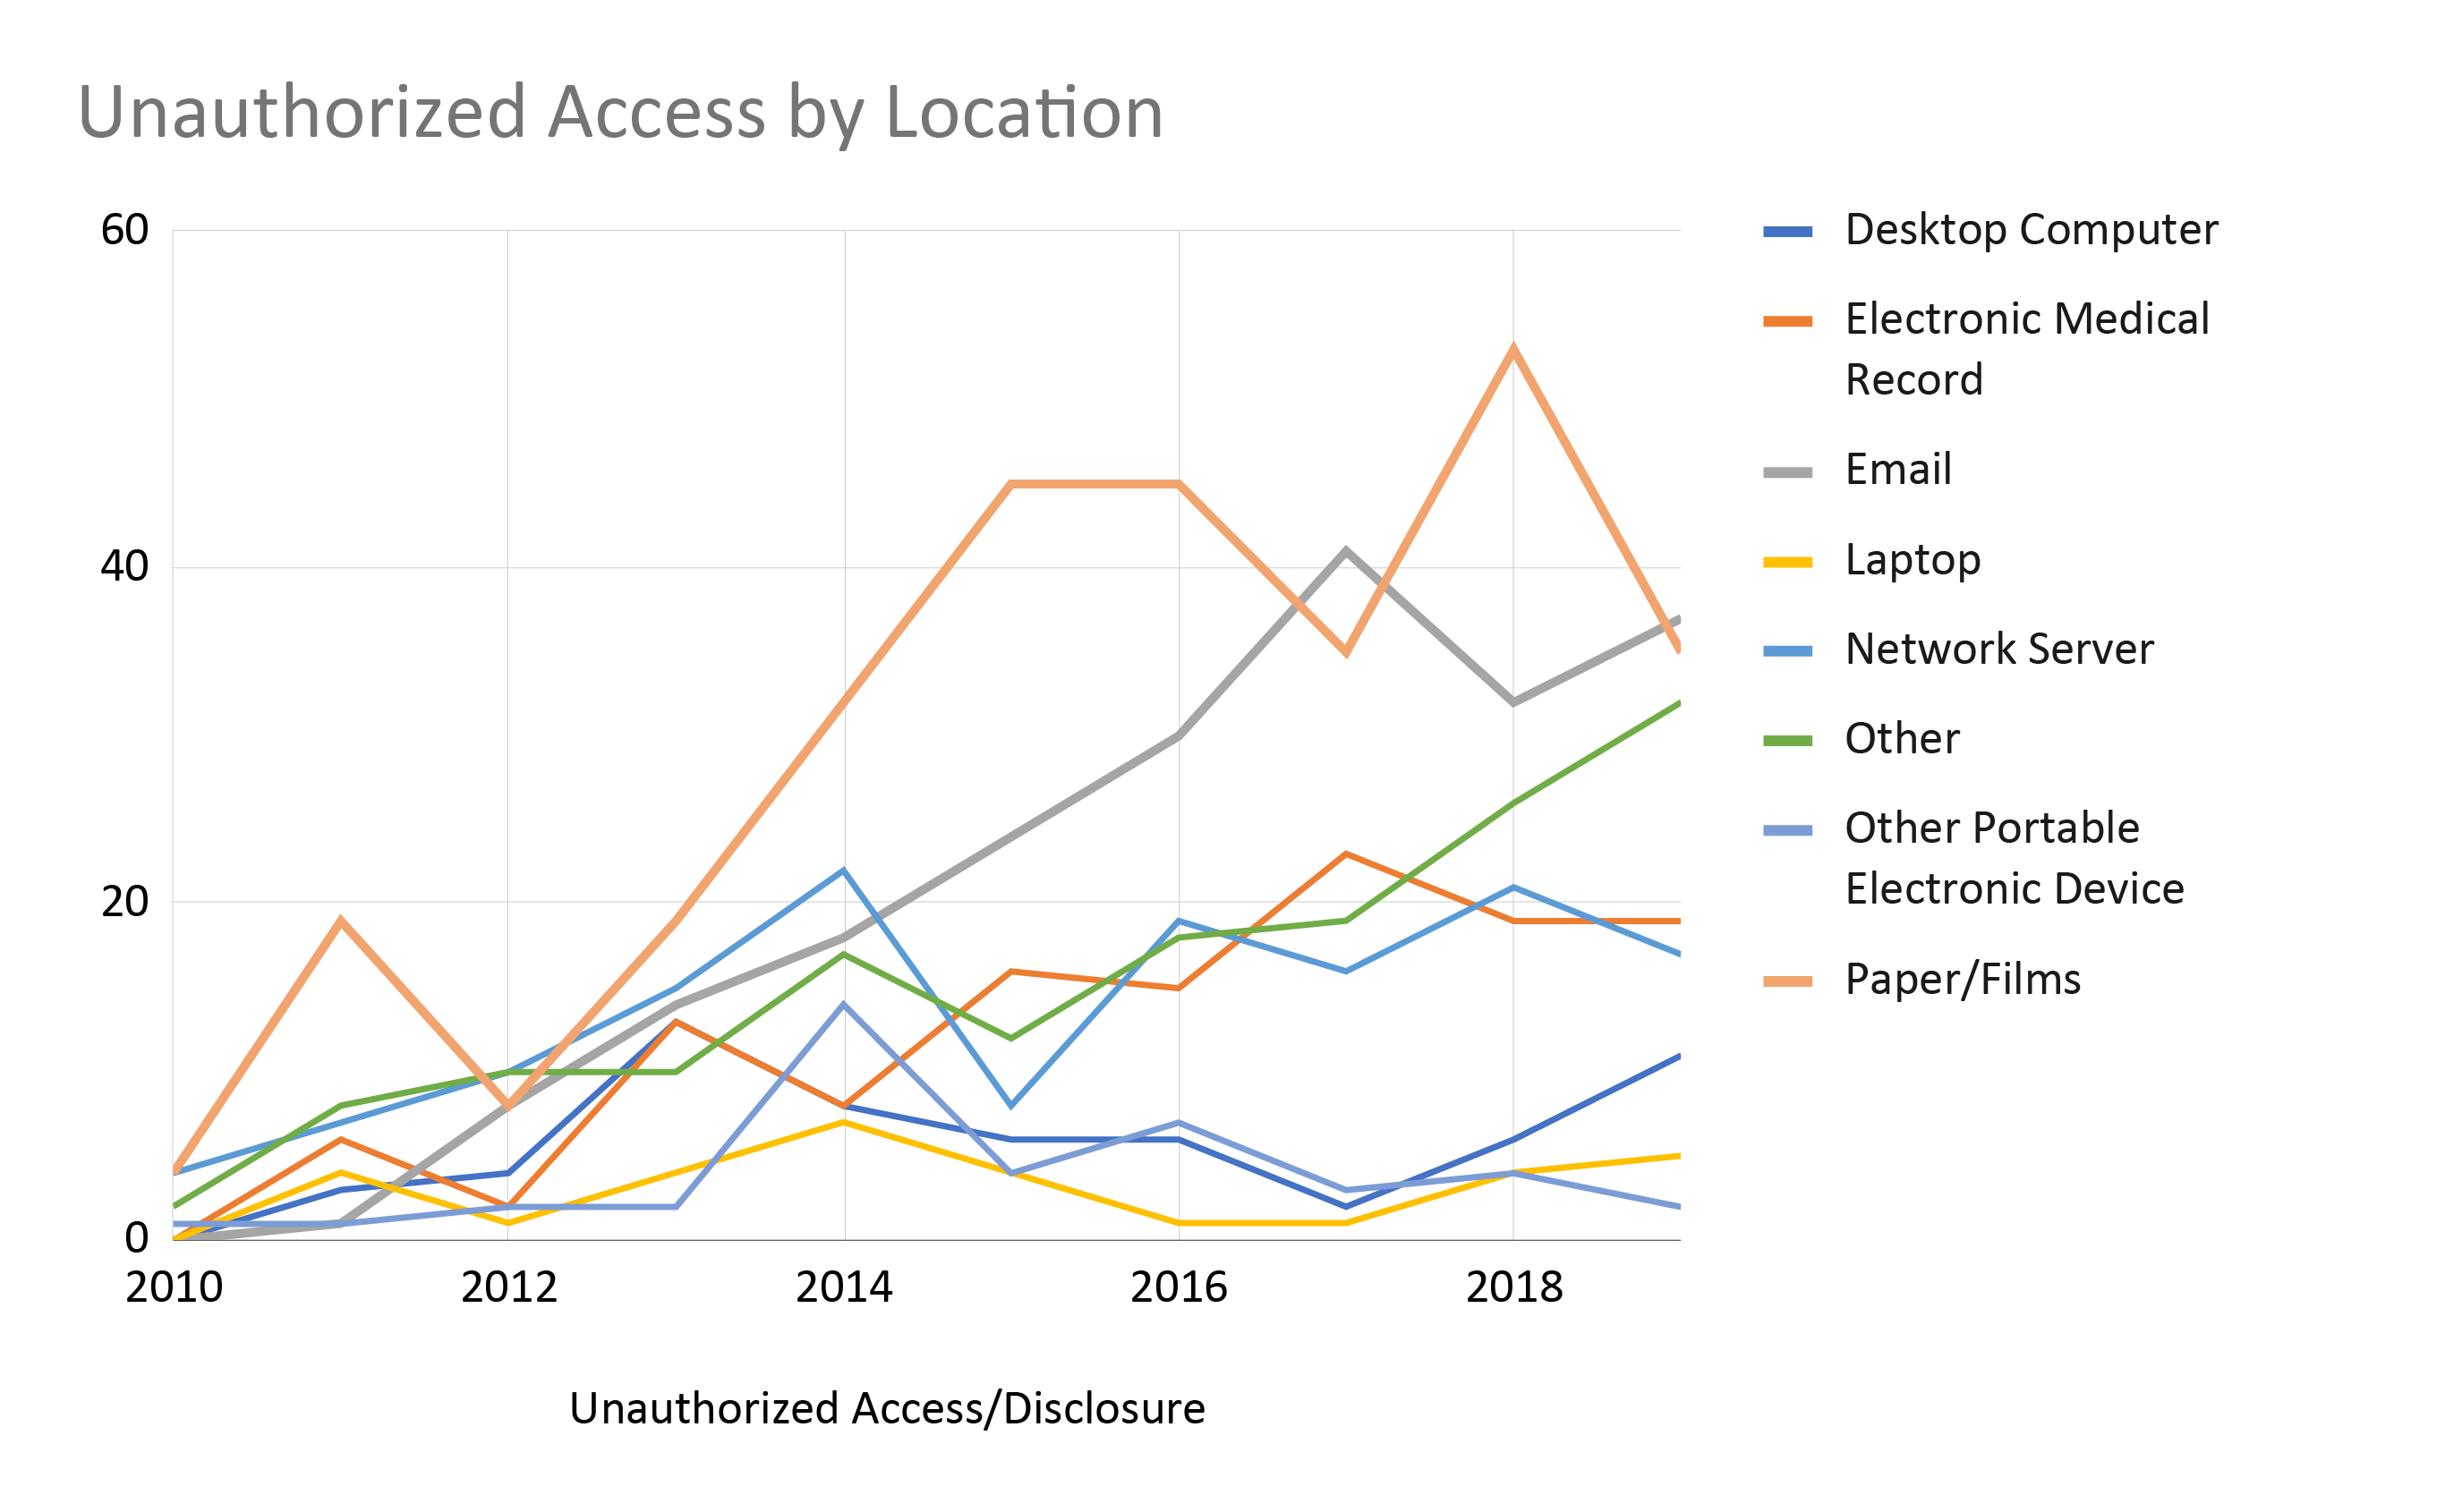 Unauthorized Access by Media Over Time